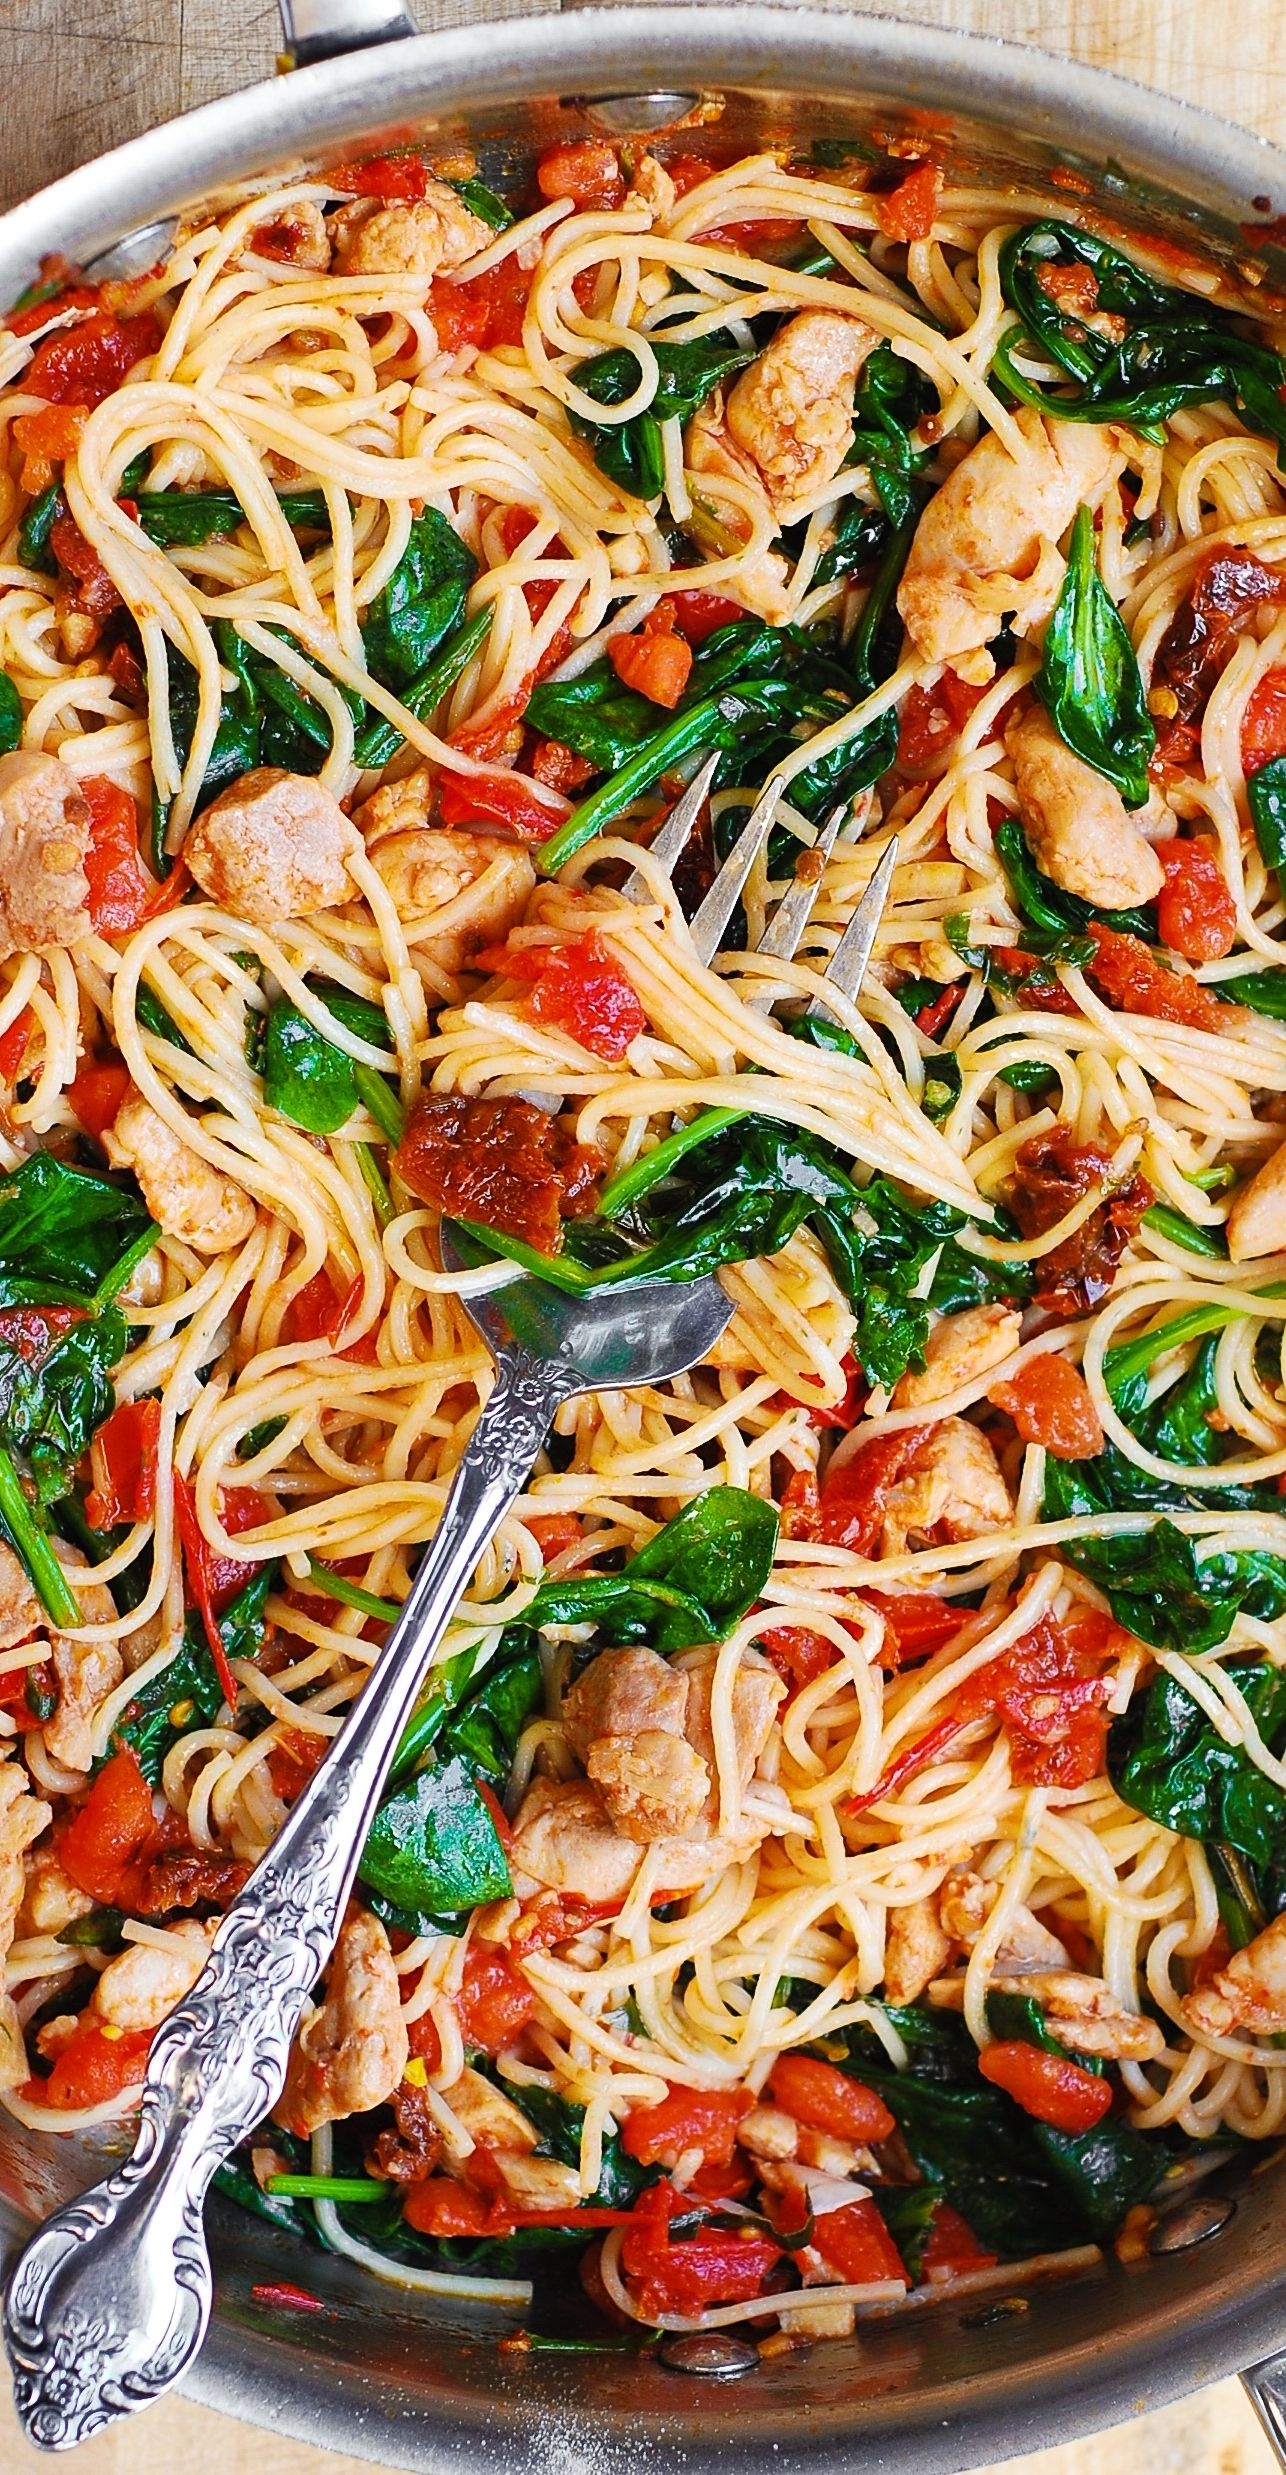 Tomato Spinach Chicken Pasta – this dinner recipe features pasta, fresh tomatoes, sun-dried tomatoes, fresh basil, spinach, garlic, and olive oil. It's a great Summer pasta recipe! Easy and quick! Only 30 minutes to make. A fantastic way to prepare chicken pasta using fresh vegetables! #tomatoes #spinach #chickenpasta #chickenrecipes #chickenbreast #Summer #Summerpasta #easydinner